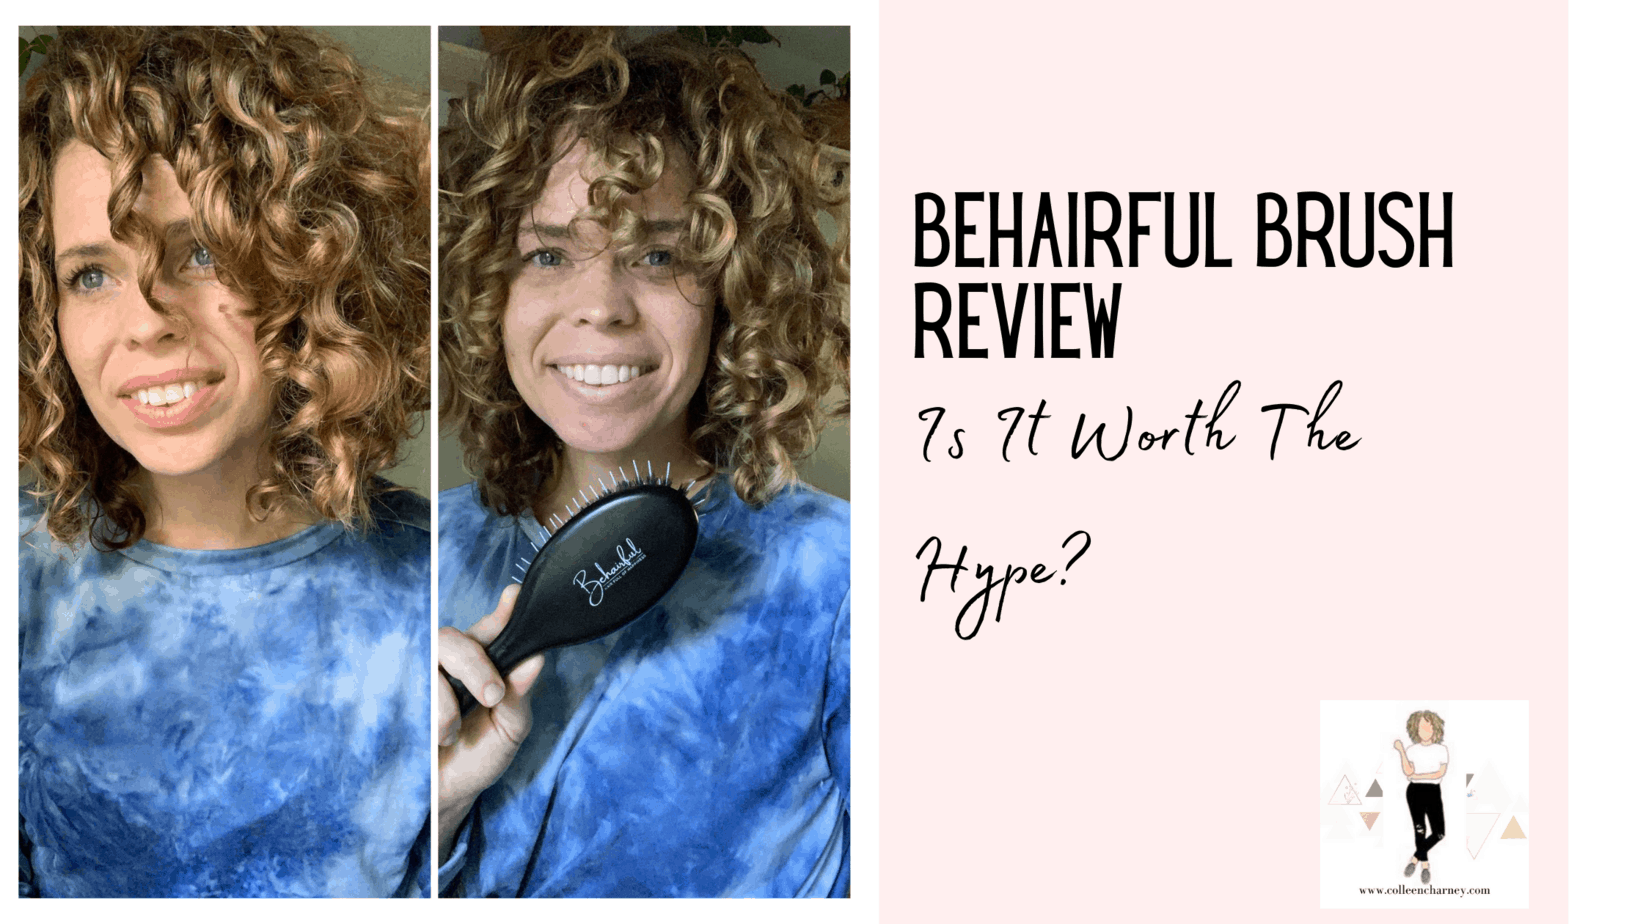 Behairful review